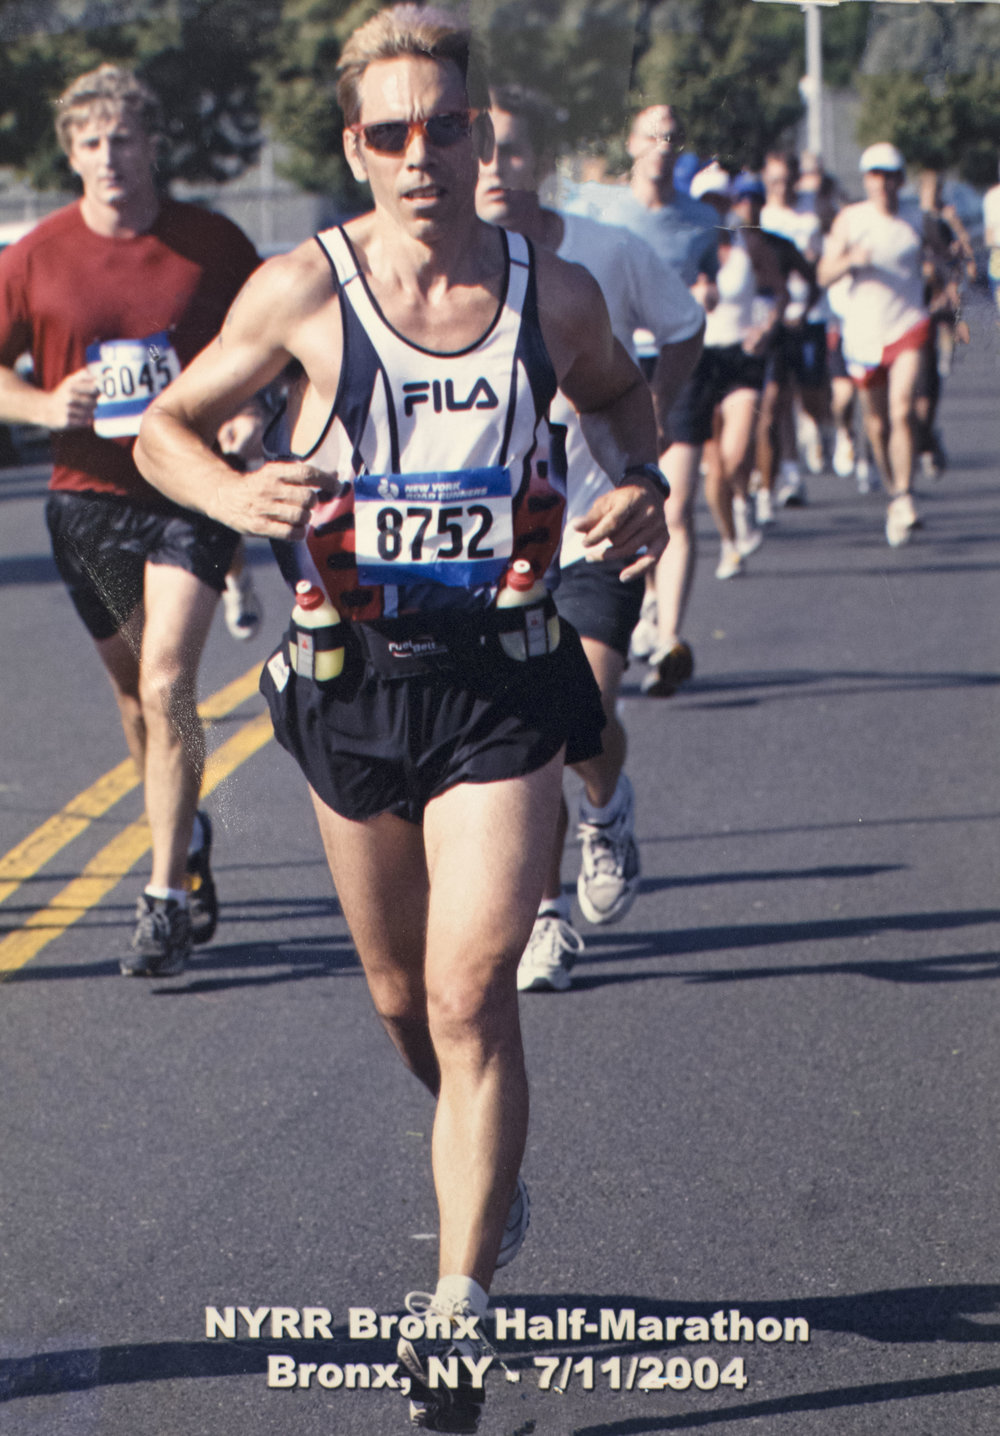 I ran the Bronx Half back in the days when the distance was 13.1 and the race was held in steamy midsummer.